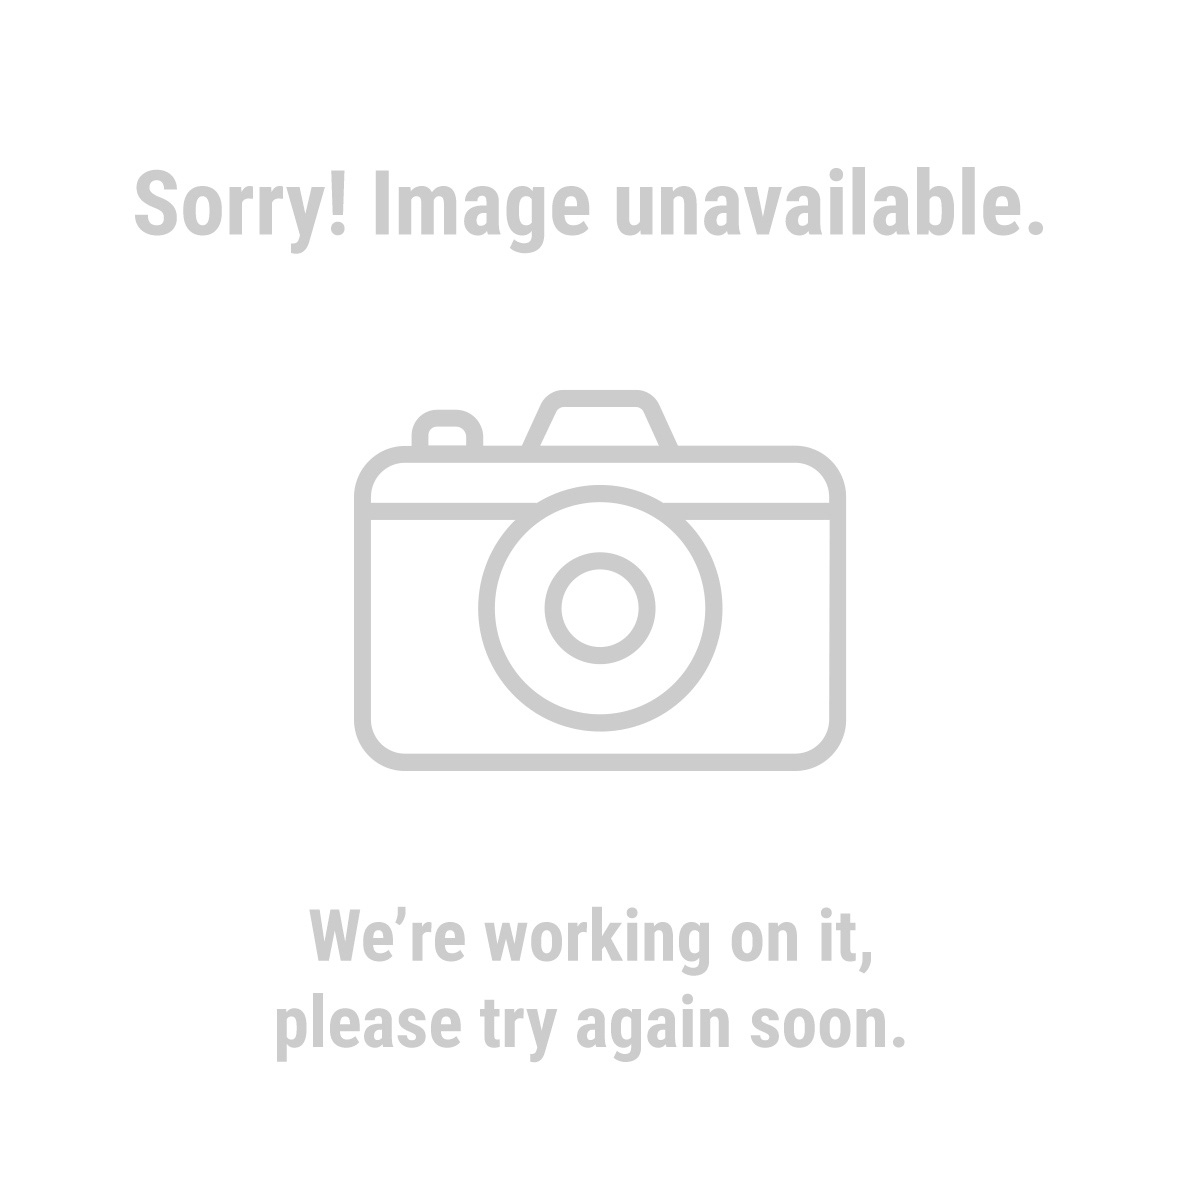 Storehouse 67552 141 Piece Washer/Seal Assortment